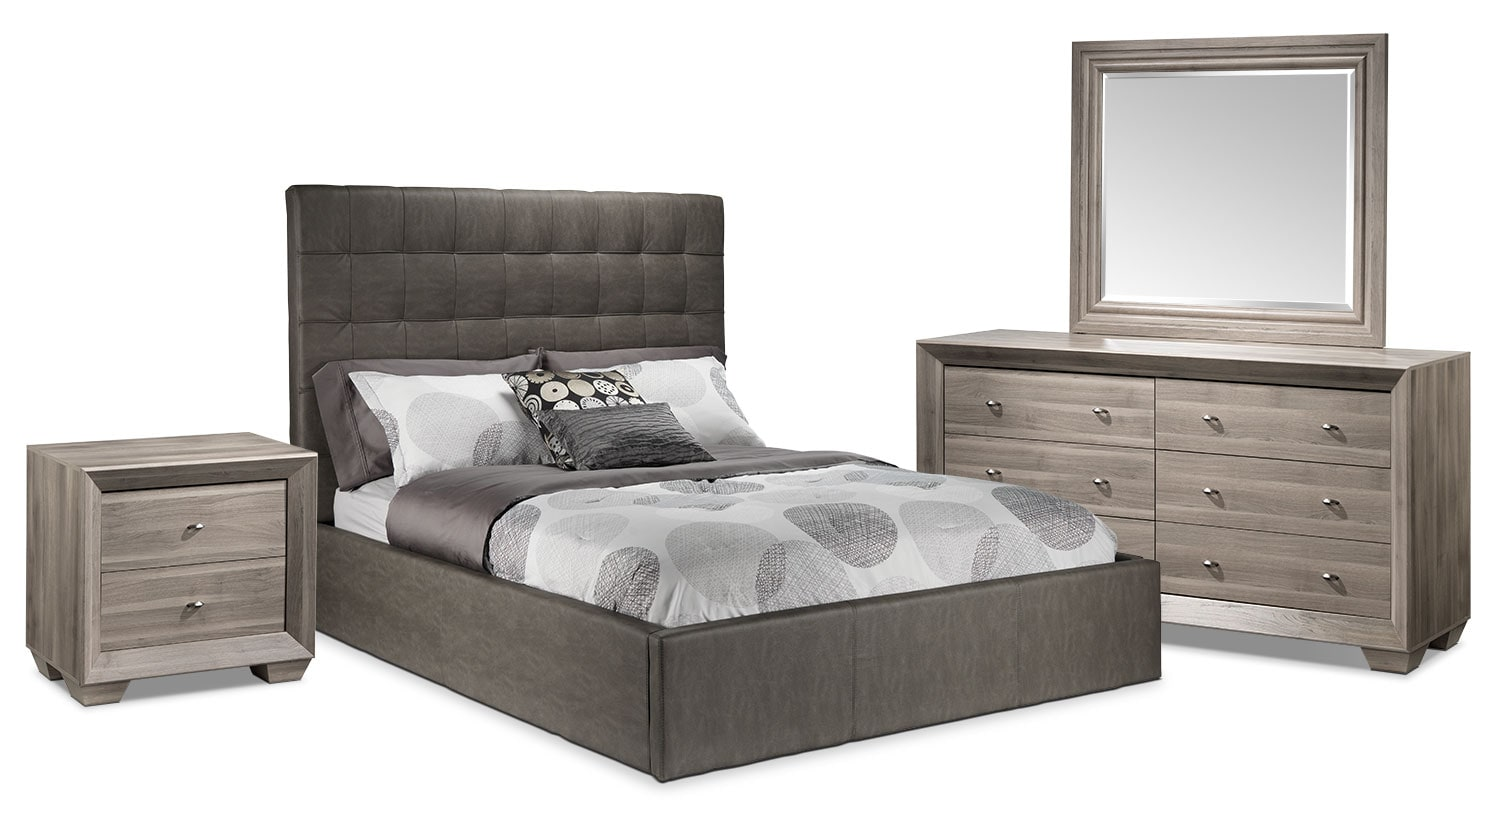 Bedroom Furniture - Franklin 5-Piece Queen Bedroom Set - Taupe